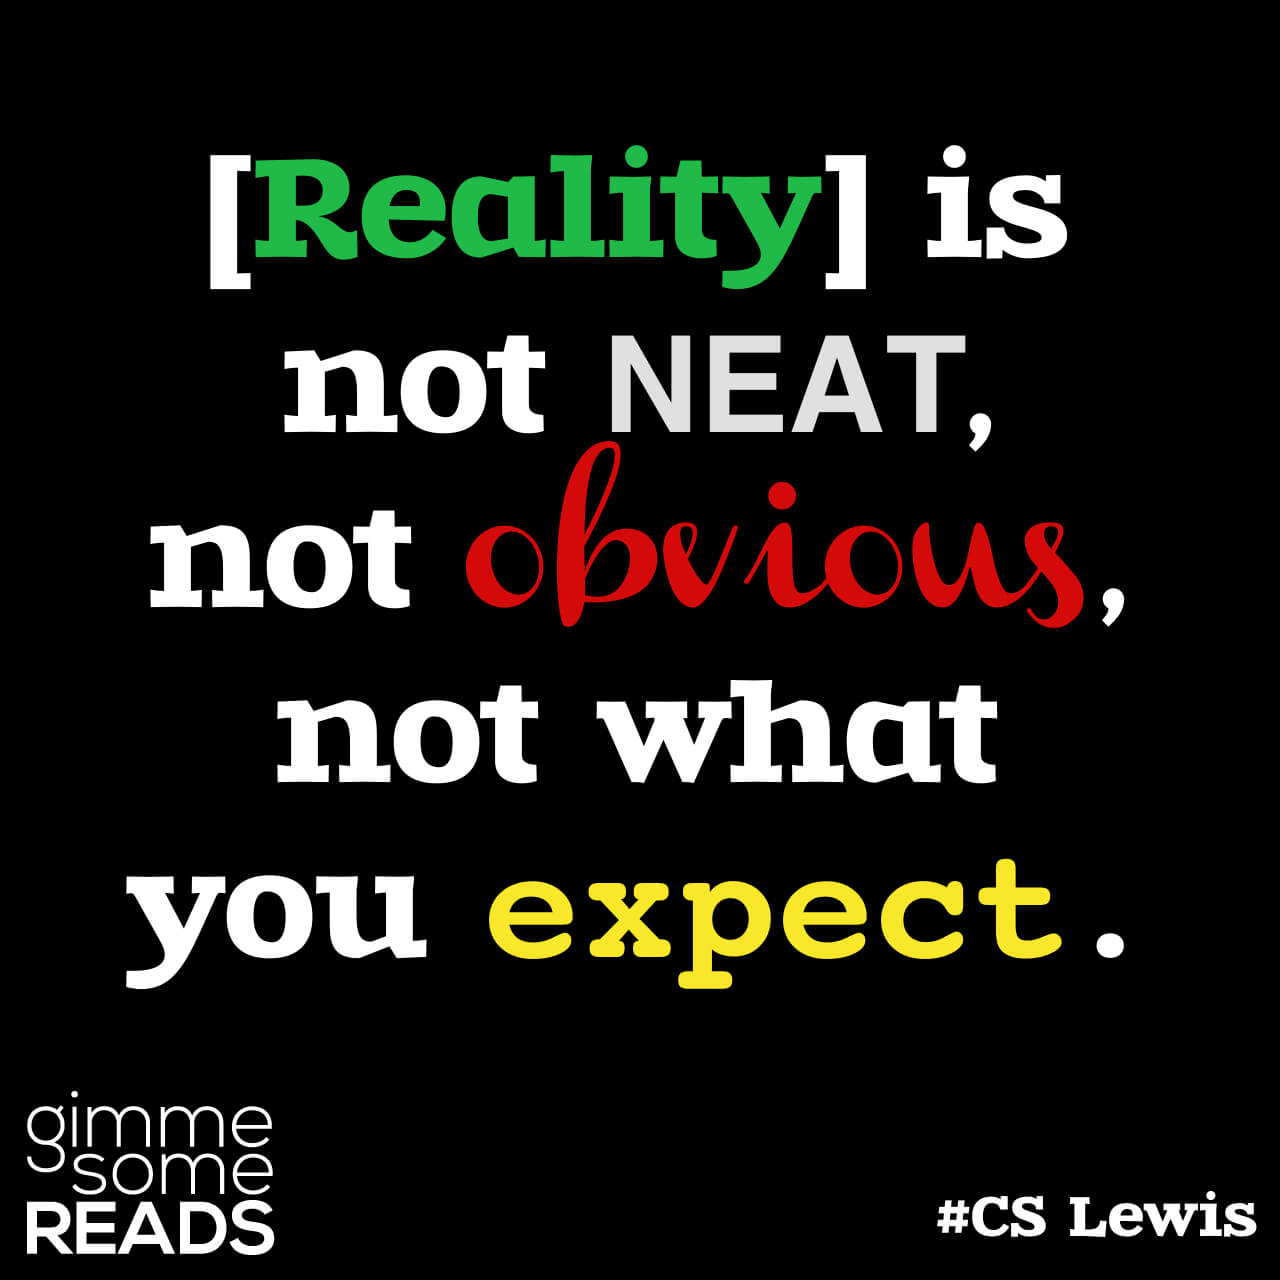 Cs Lewis Quote About Friendship Cslewis Quotes  Gimmesomereads